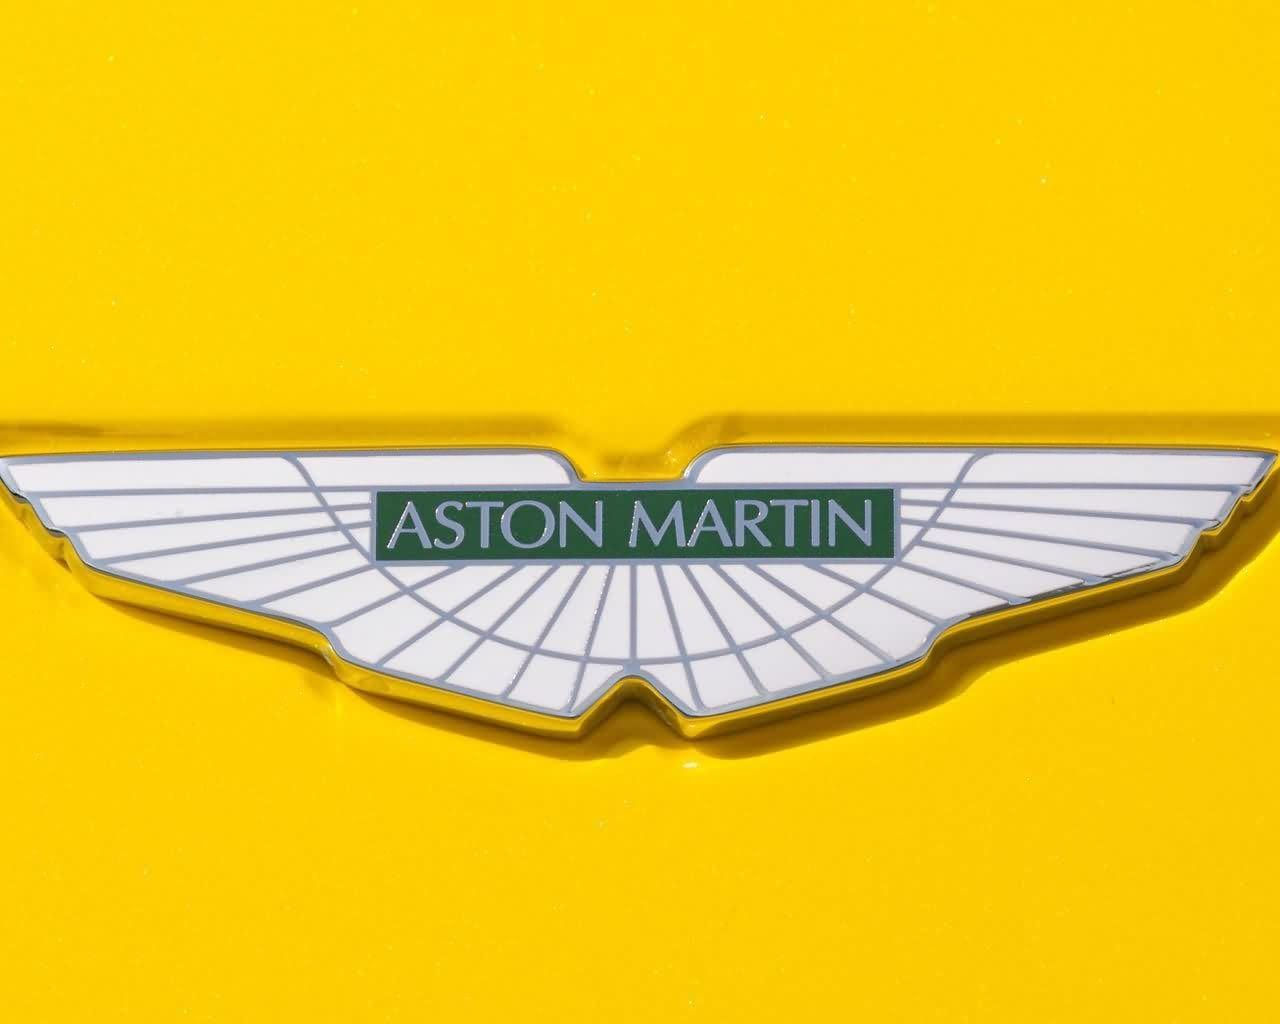 Aston Martin Wallpapers HD Download